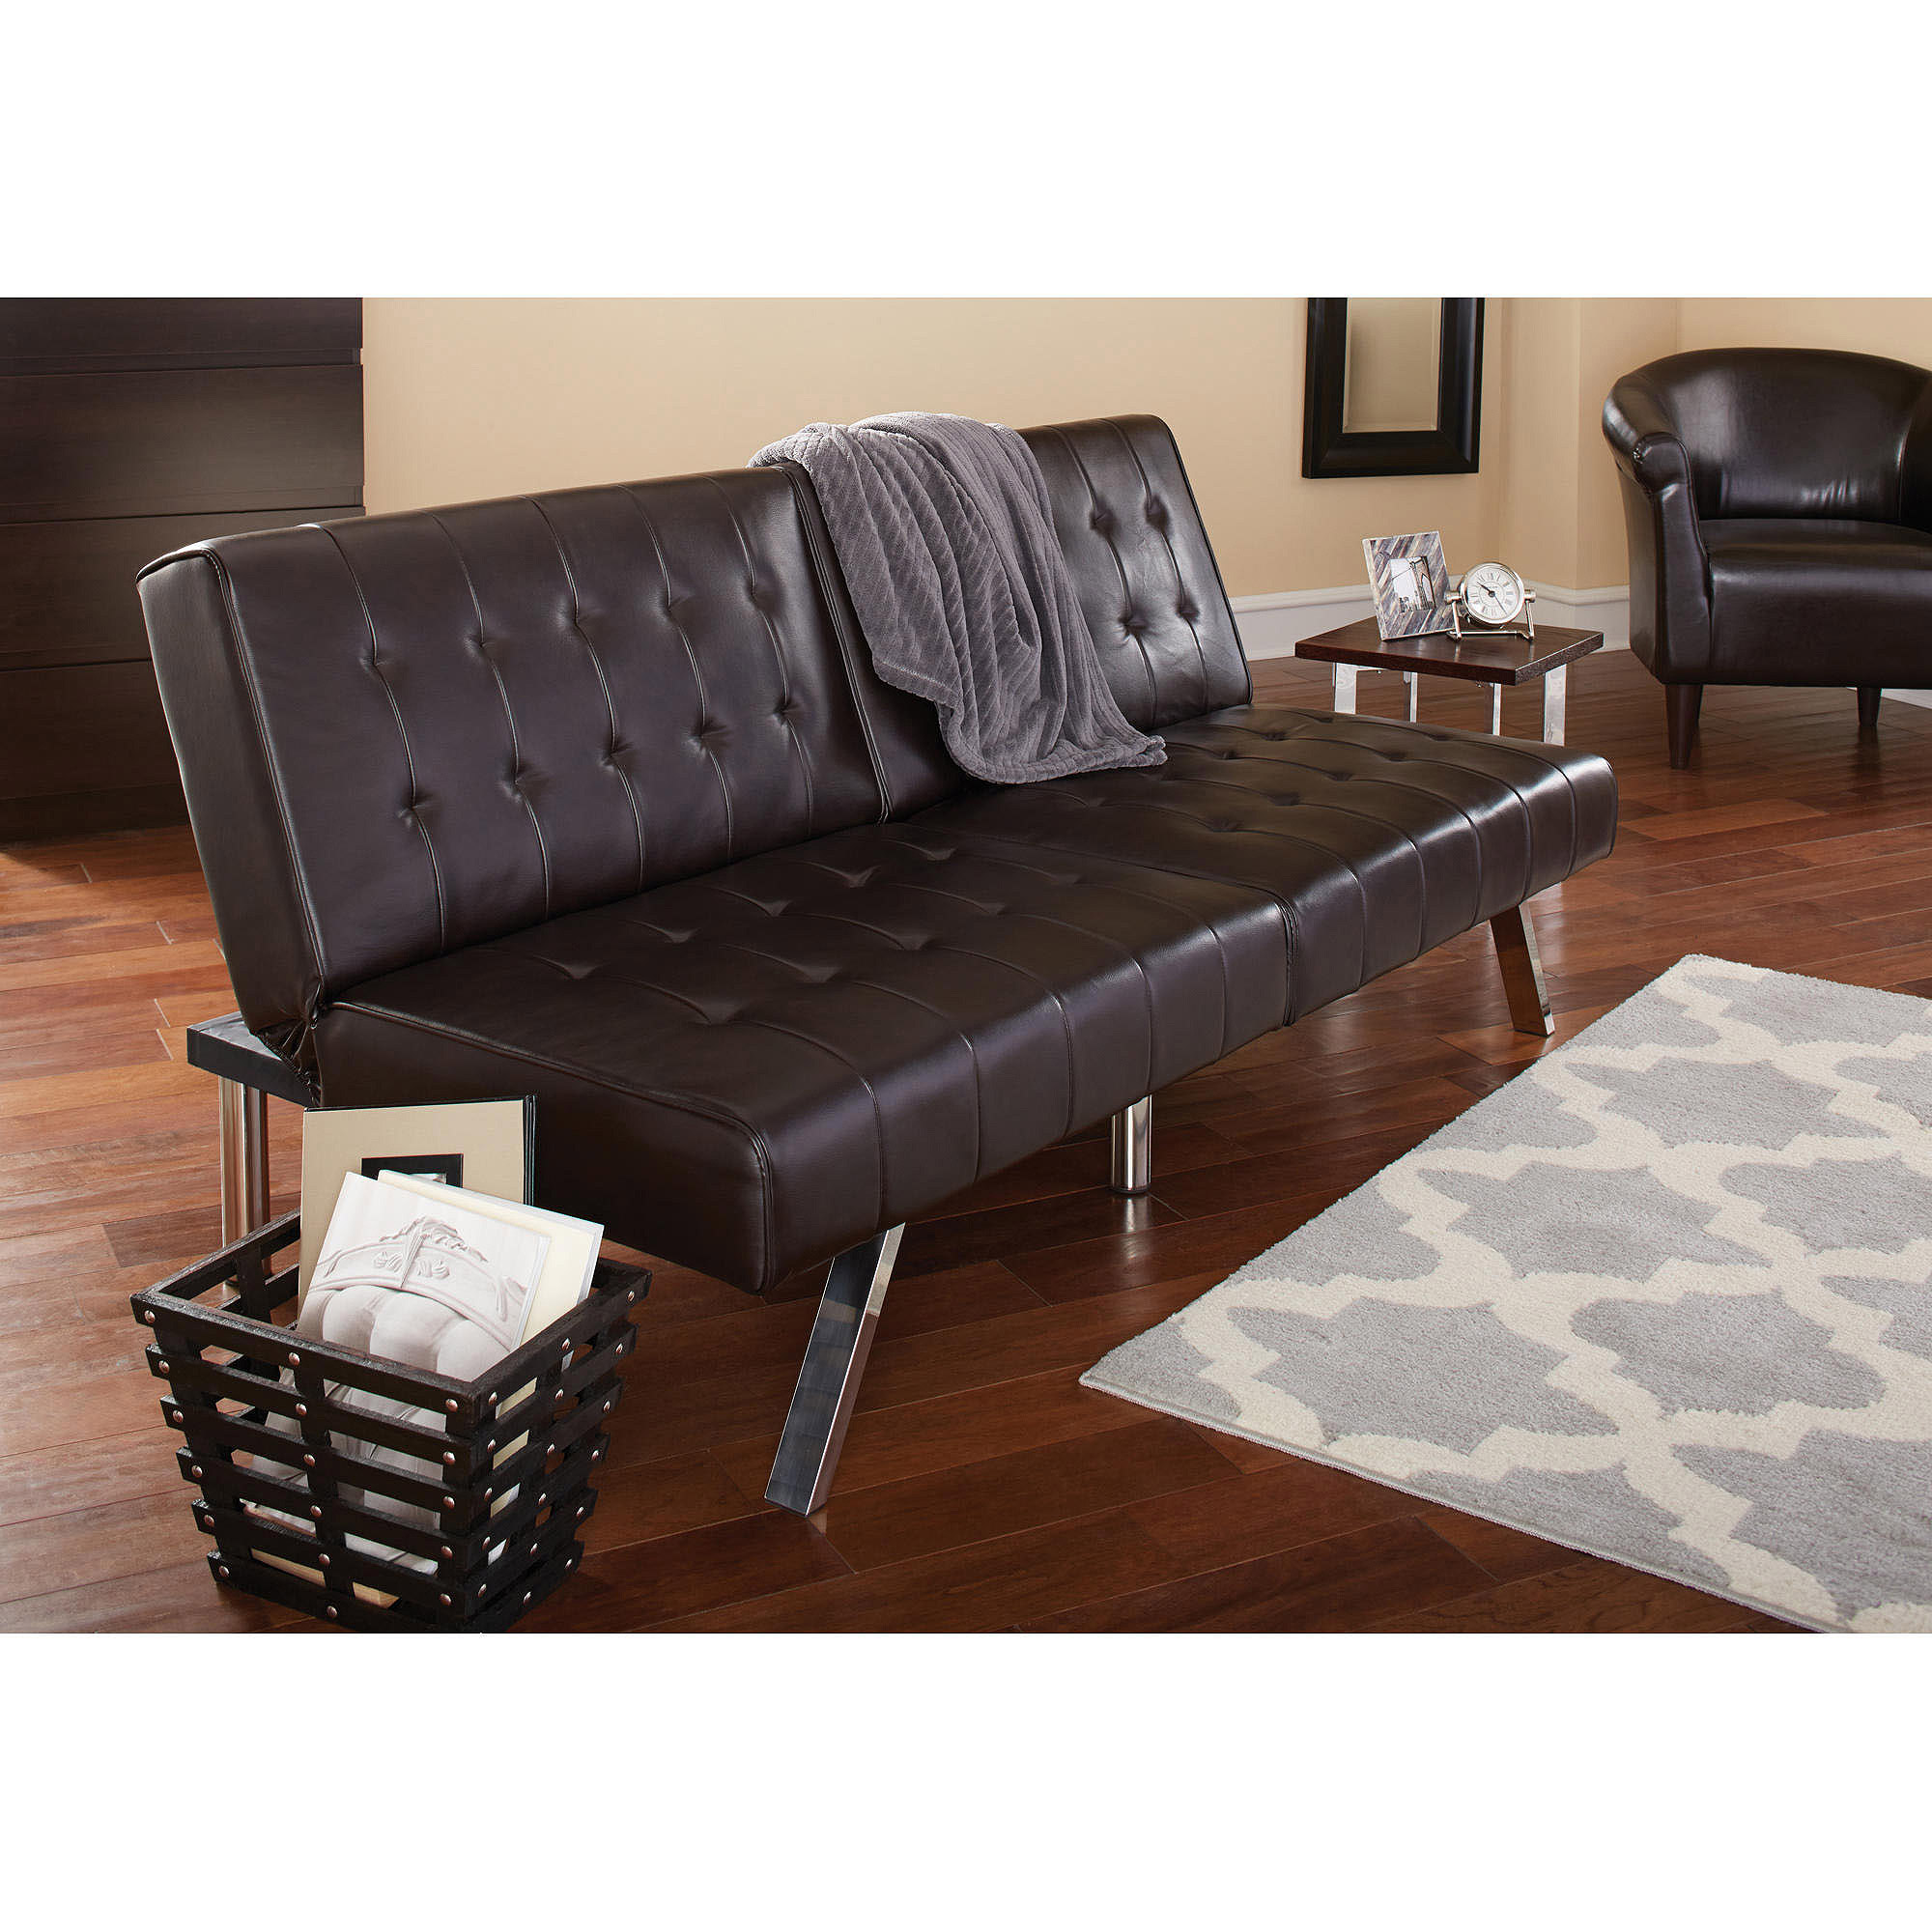 mainstays morgan faux leather tufted convertible futon brown mainstays morgan faux leather tufted convertible futon brown      rh   walmart